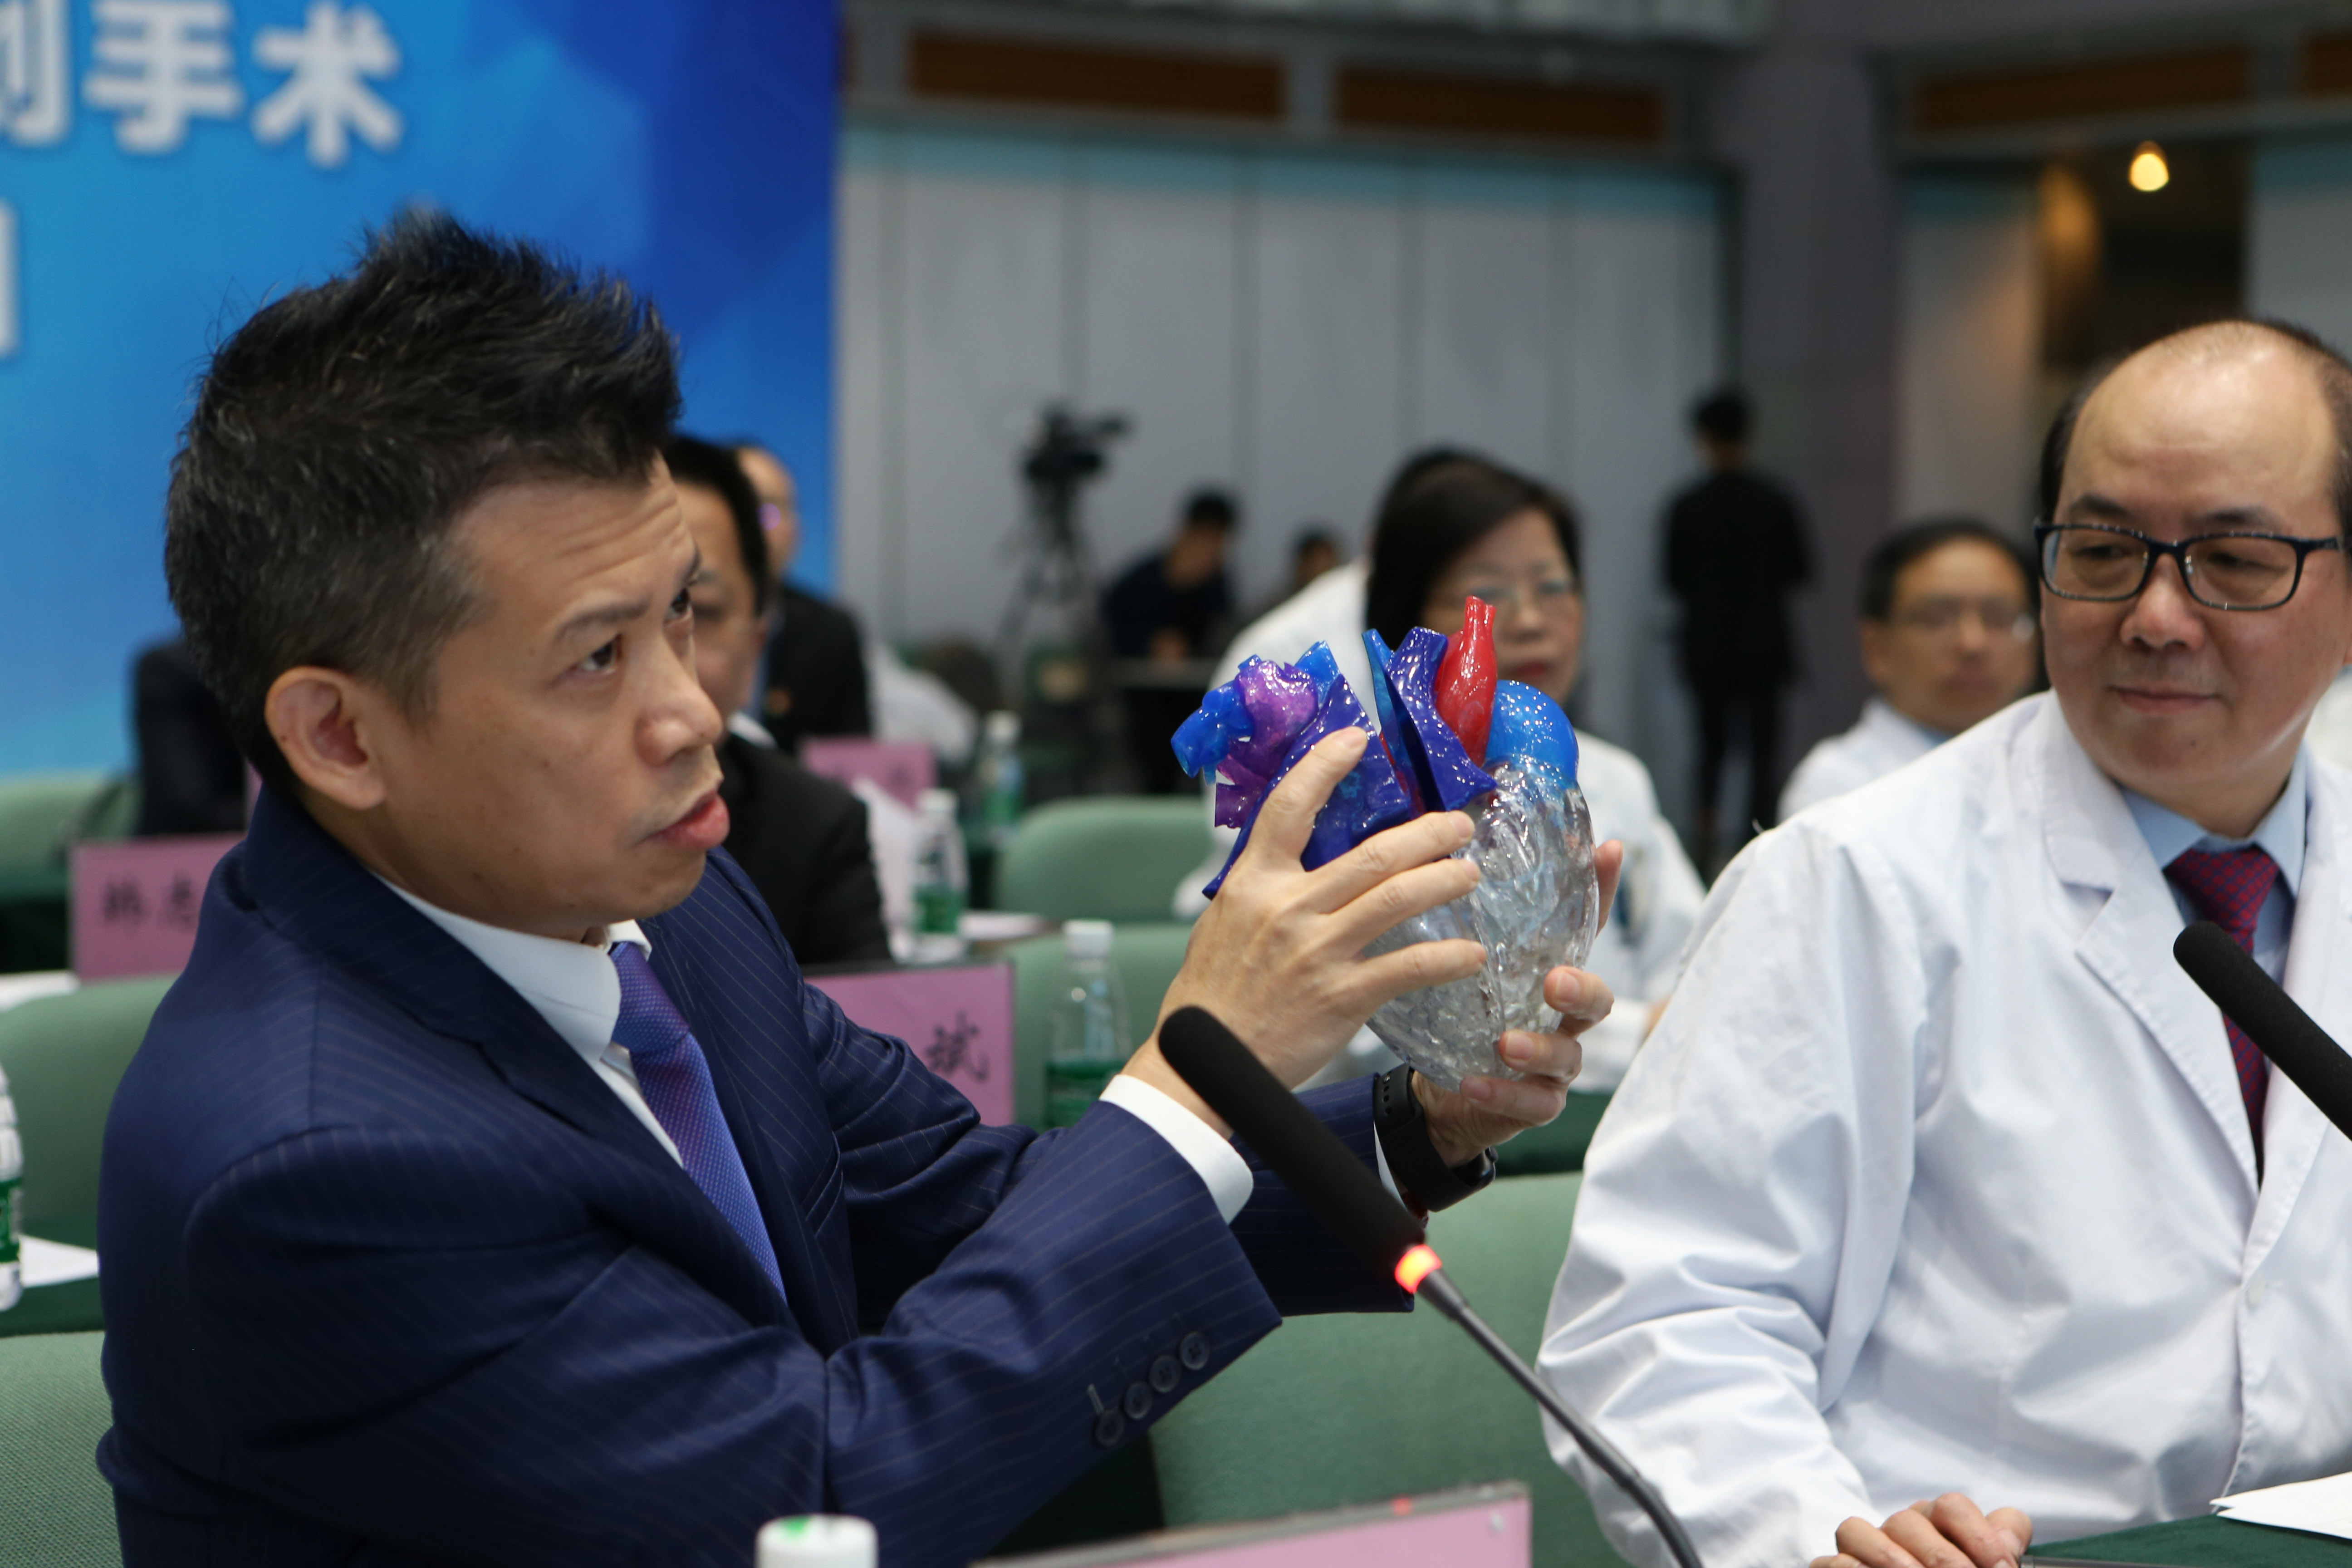 Feature: 5G brings advanced healthcare to China's hinterland - Xinhua   English.news.cn